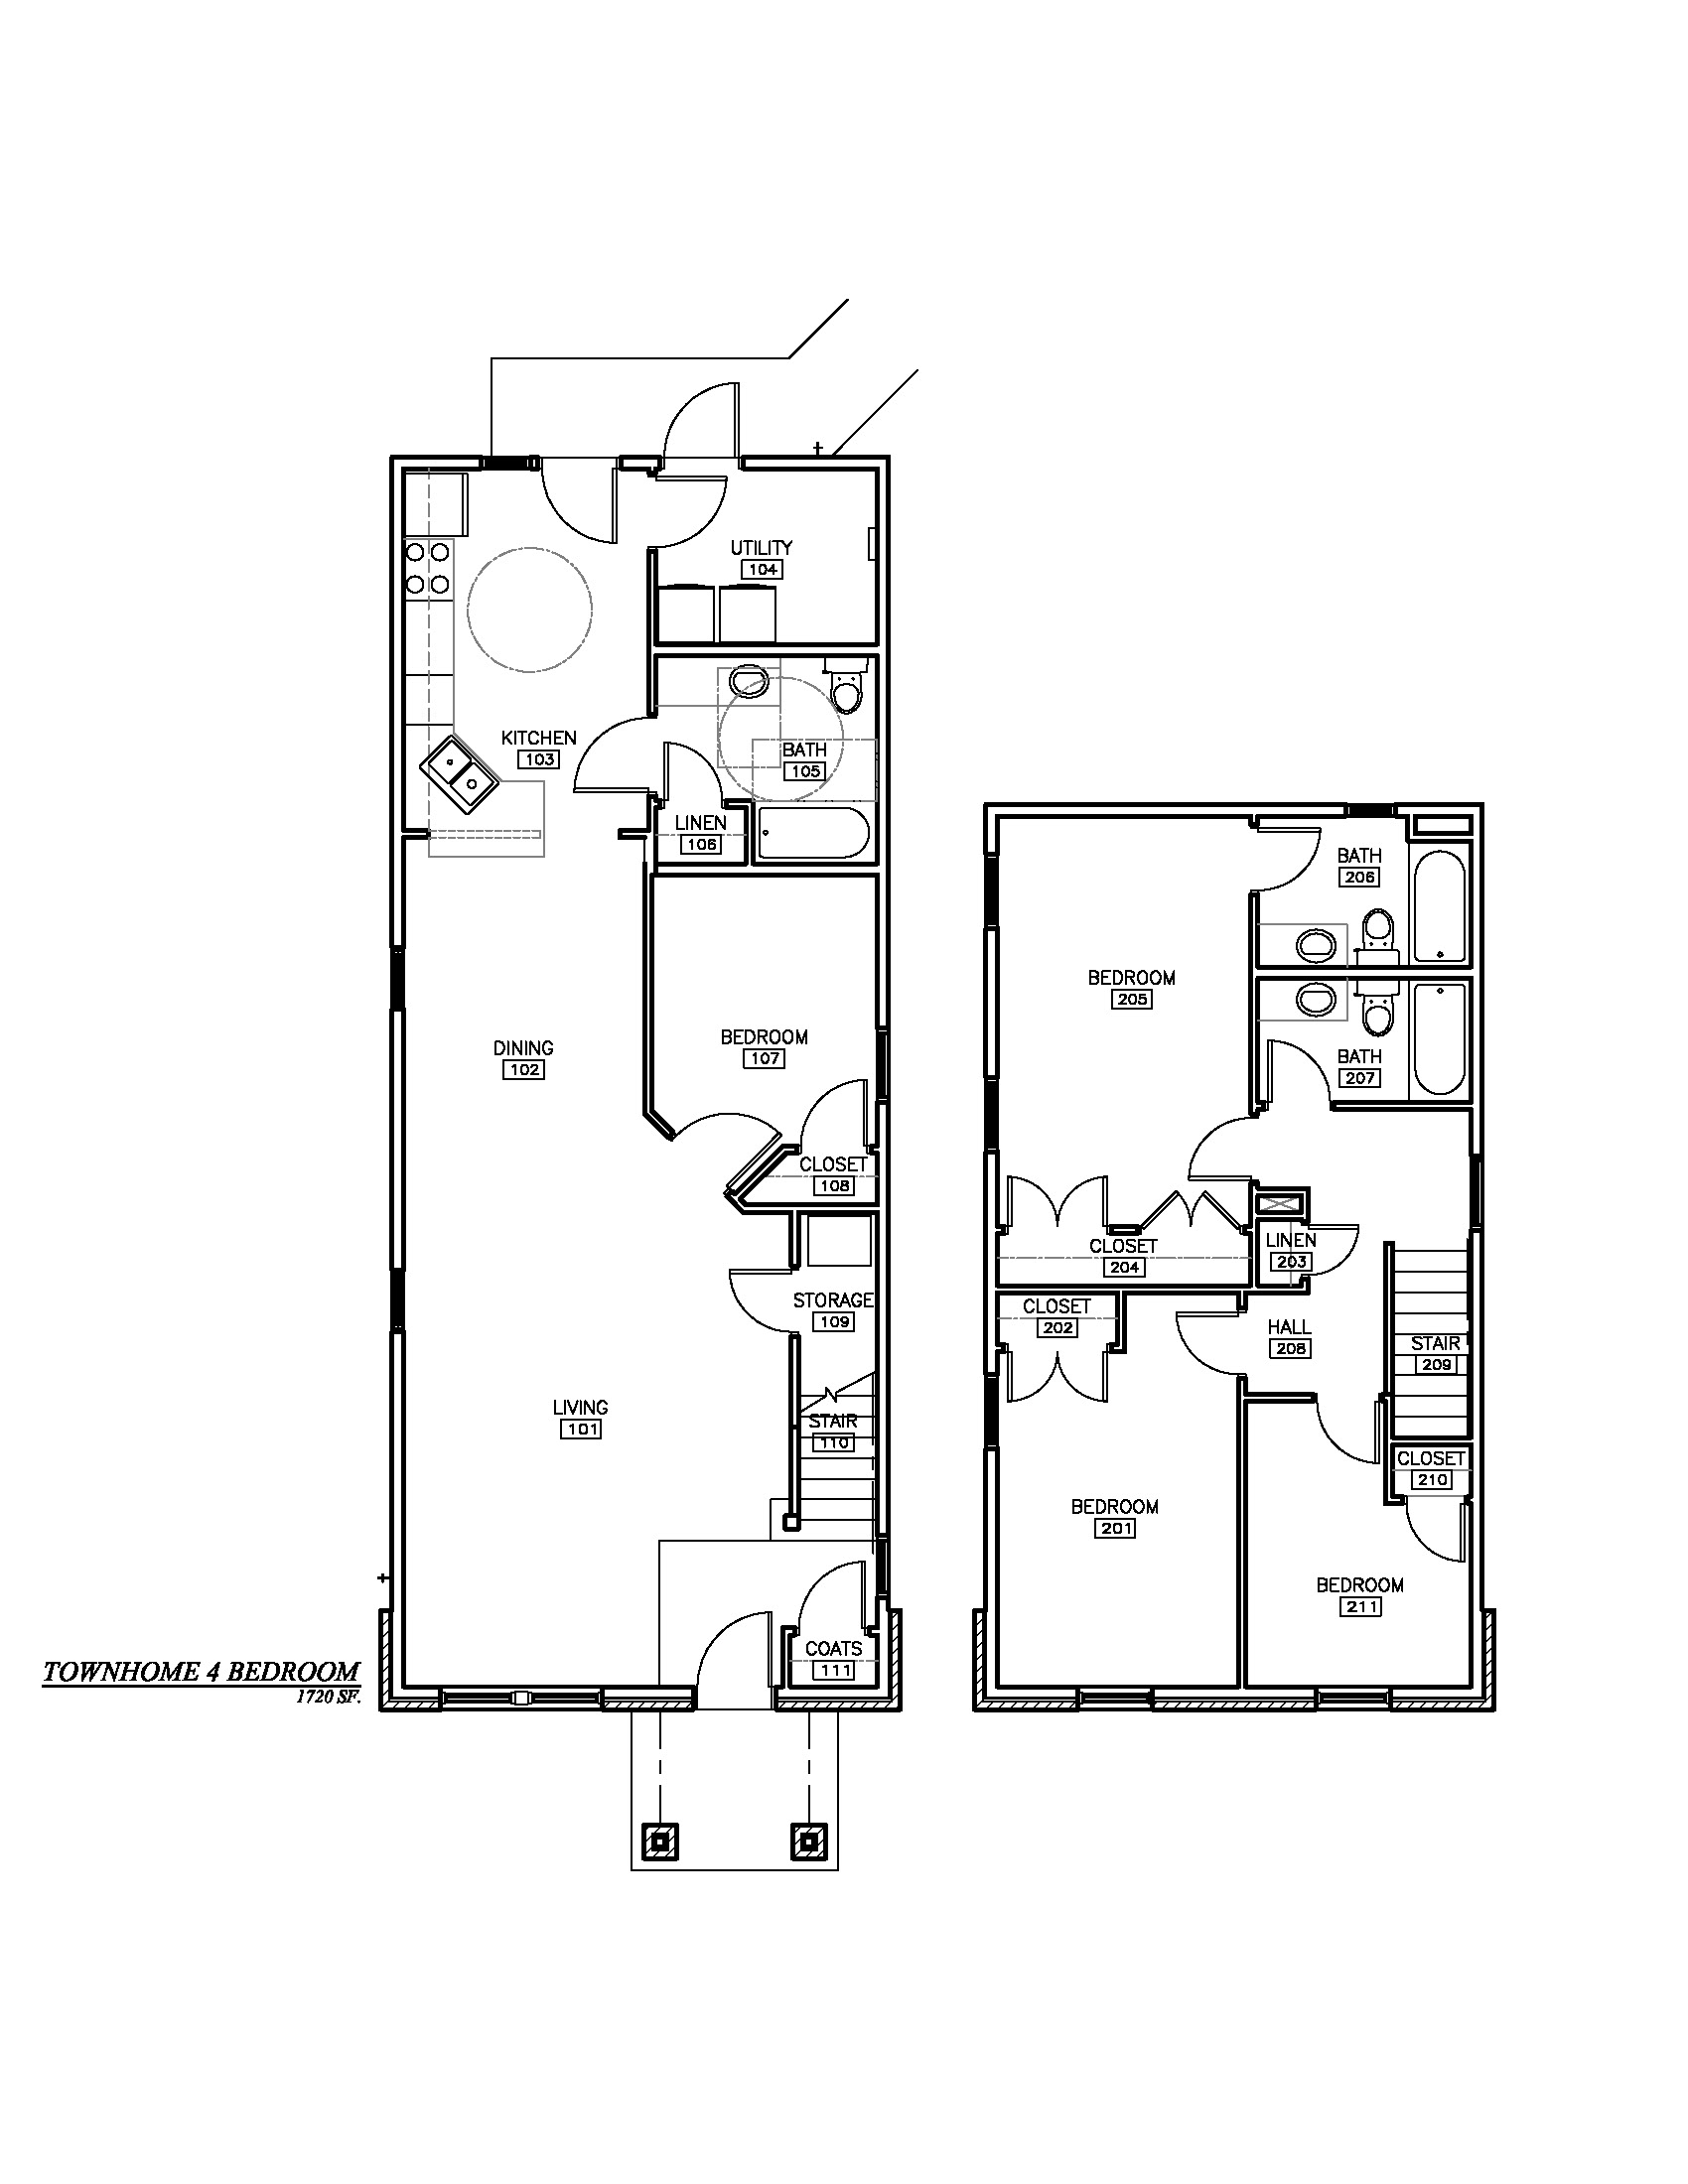 phase i 4 bedroom townhome